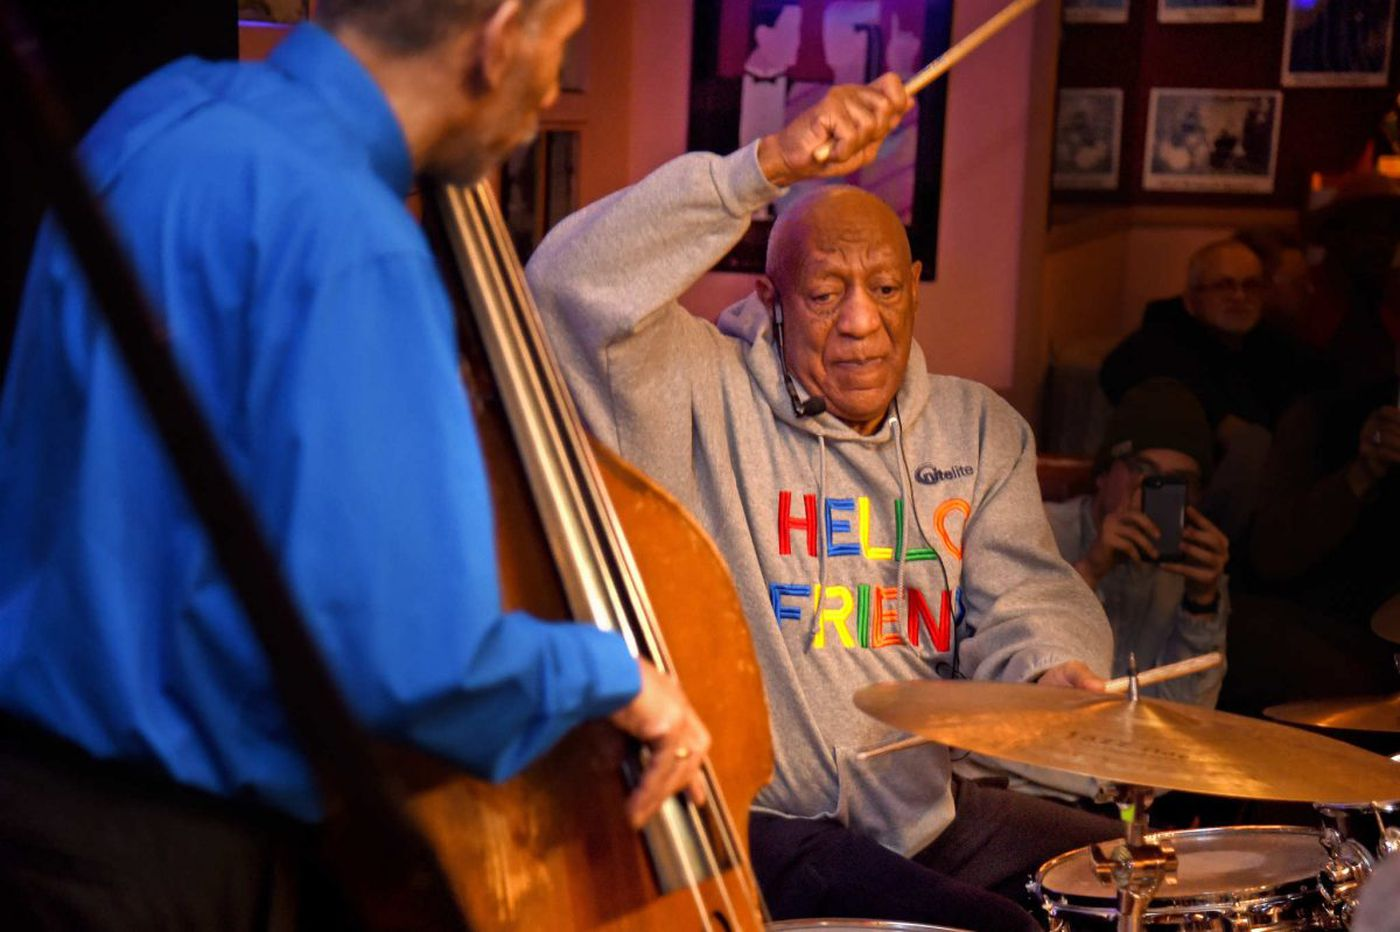 With retrial looming, Bill Cosby takes the stage at Germantown club for first public performance in years